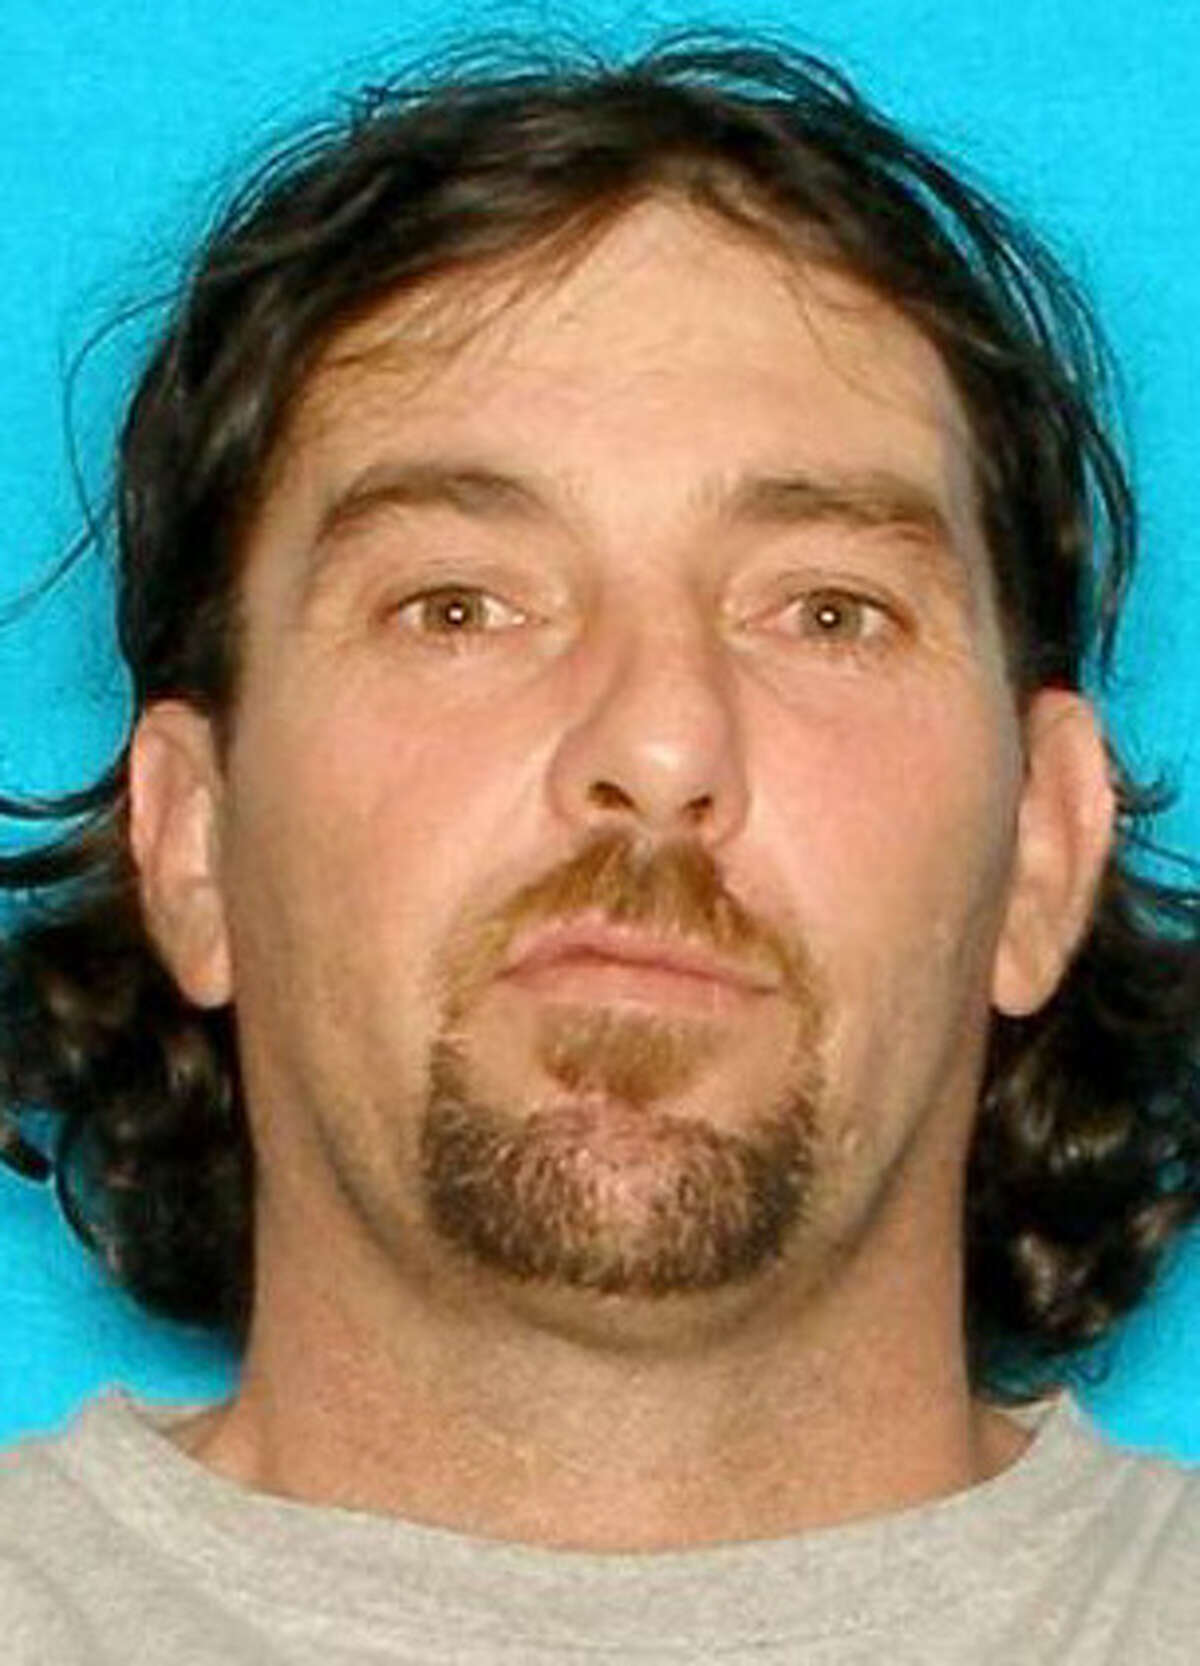 Daniel Goodwin, 41, seen in an undated driver's license photo, was shot in the chest at a 2012 family barbecue.